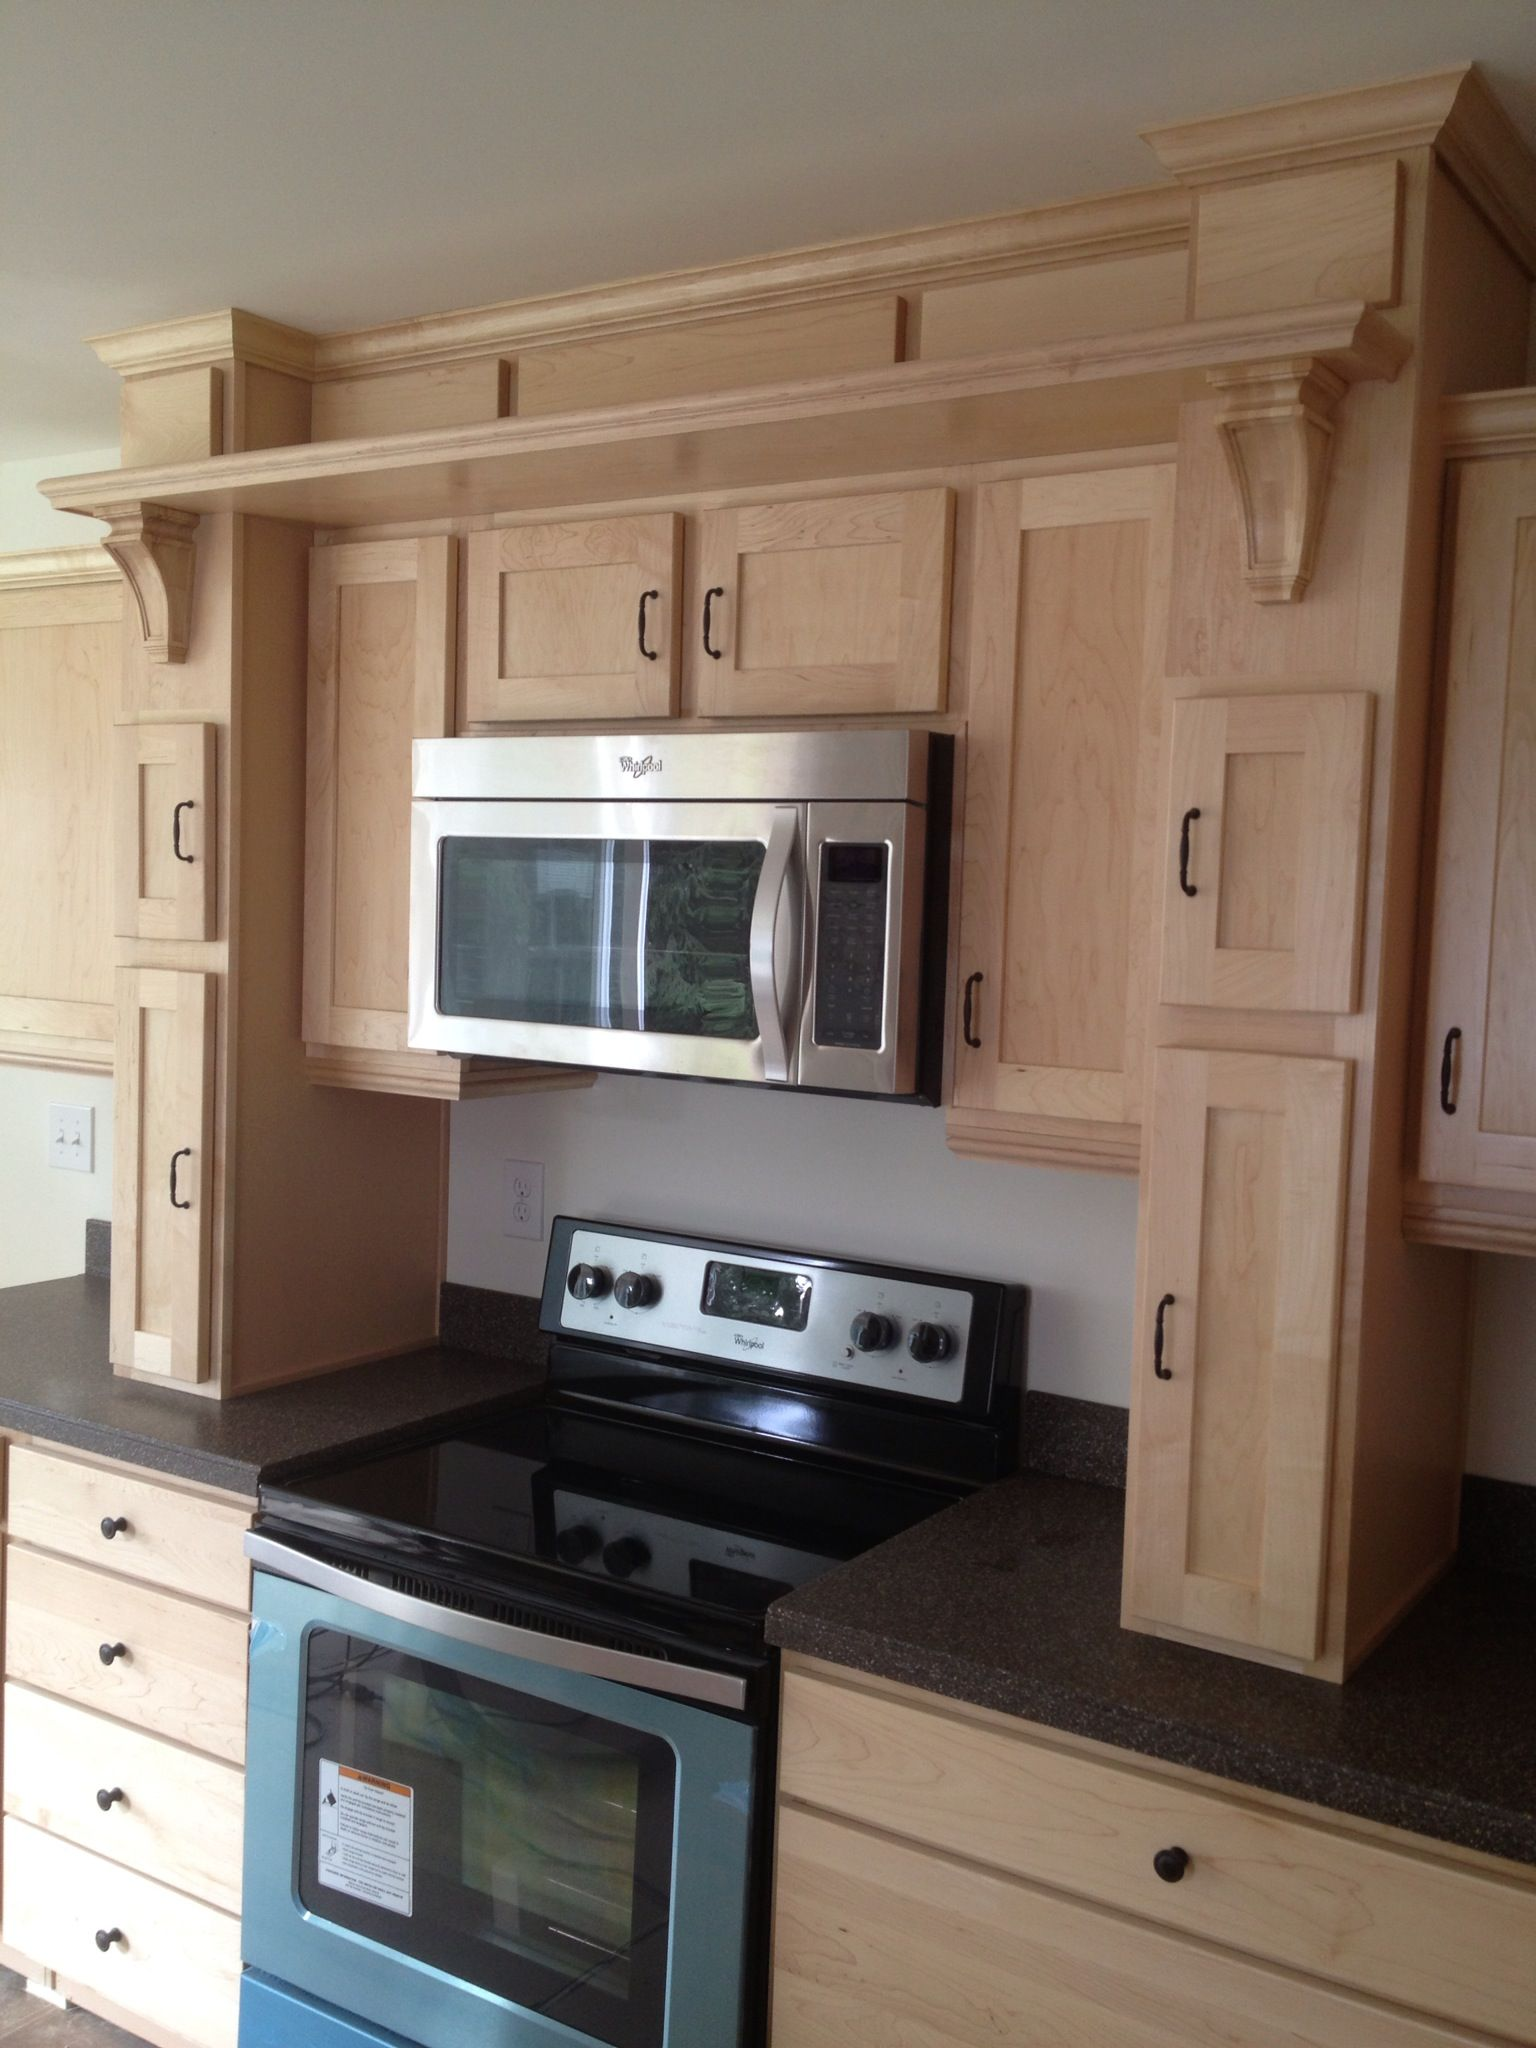 Great Hearth Kitchen With Microwave Option!